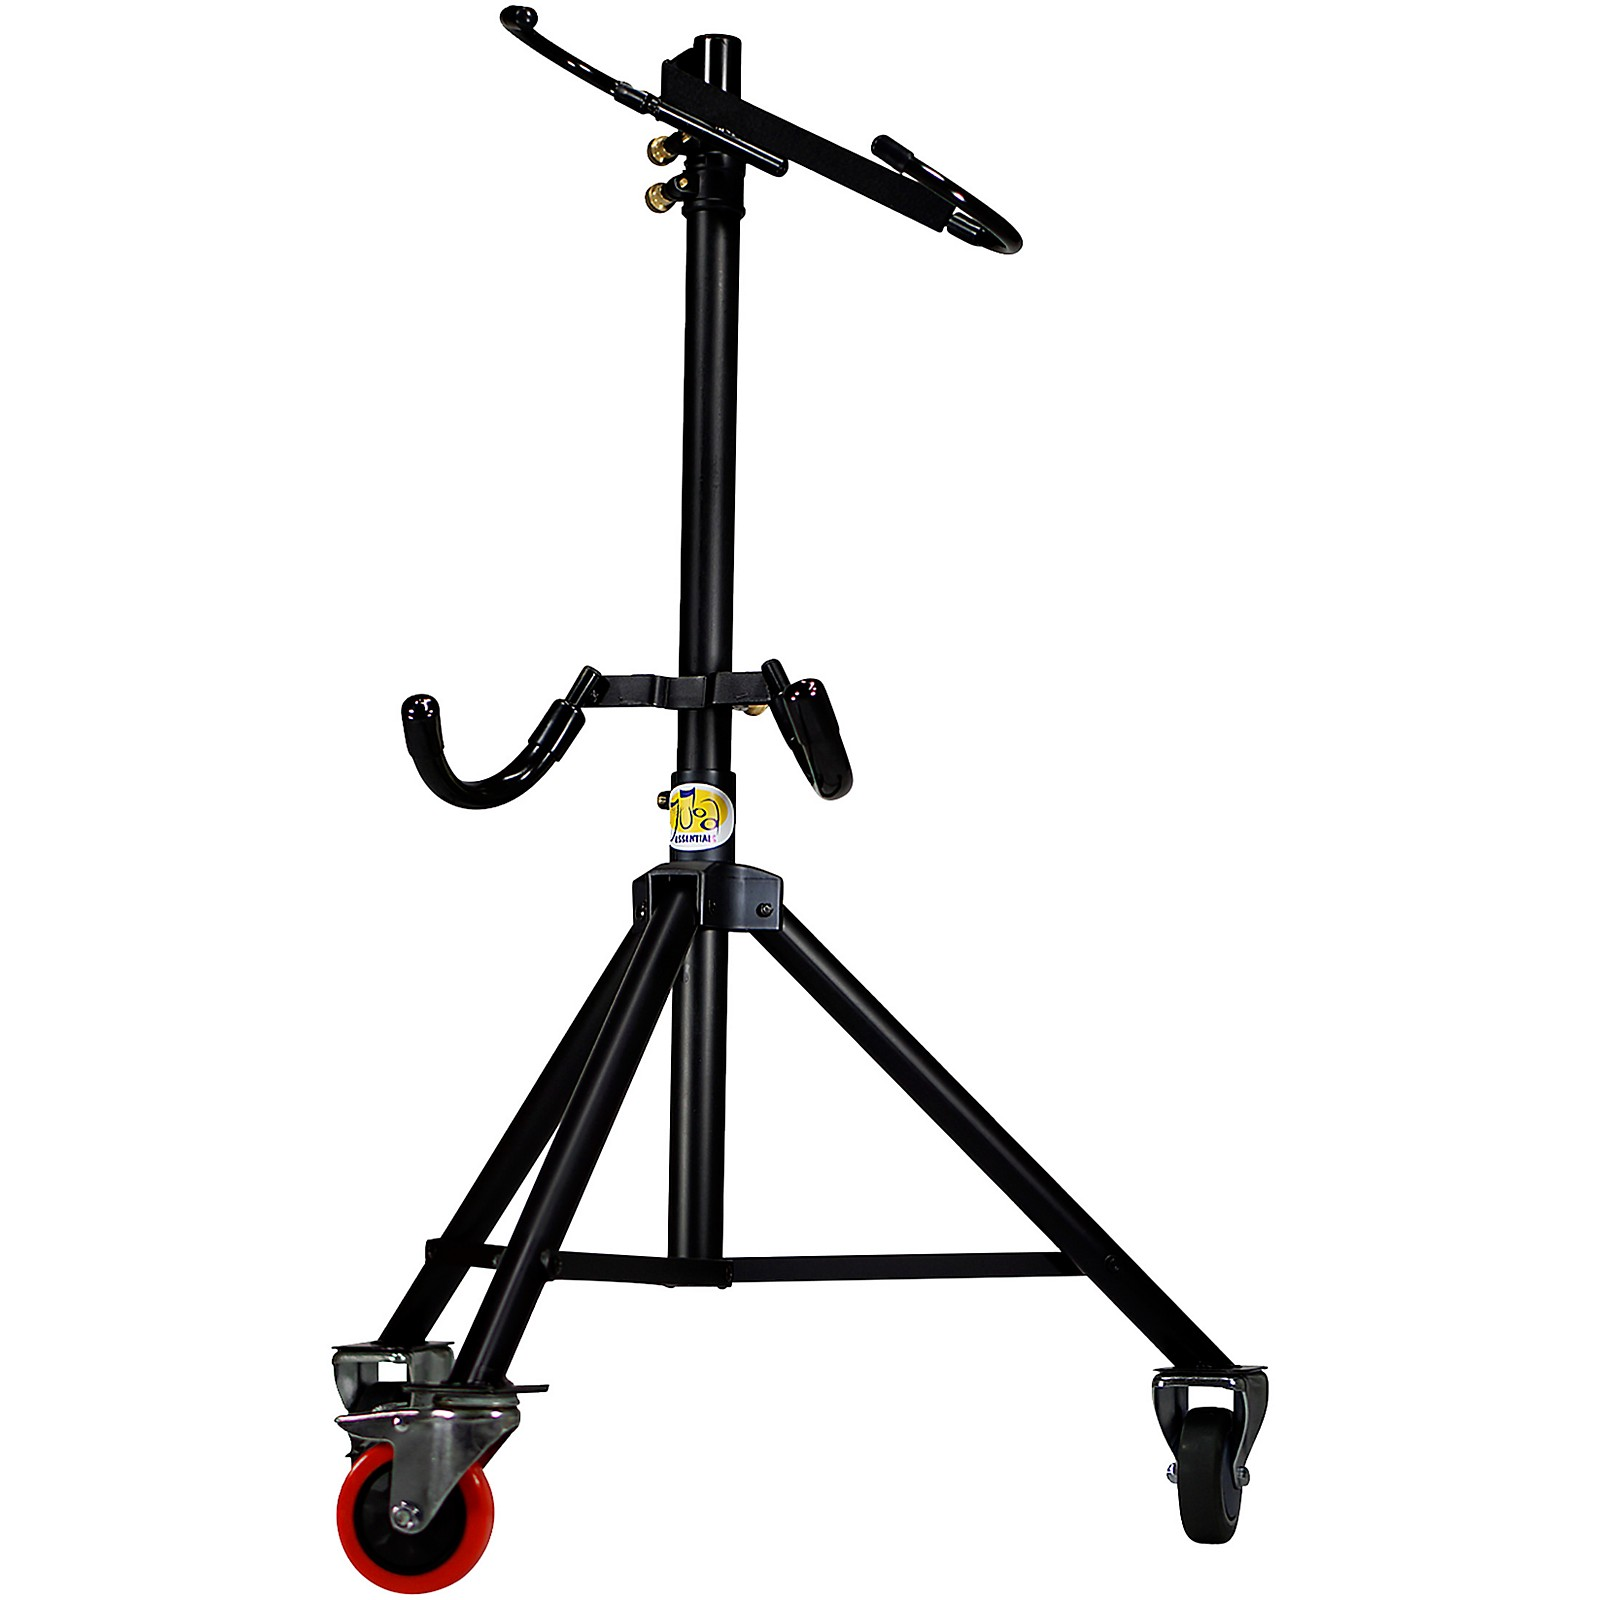 Tuba Essentials The Hug Adjustable Tuba Stand for Full-Size Right Side Mouthpiece Instruments